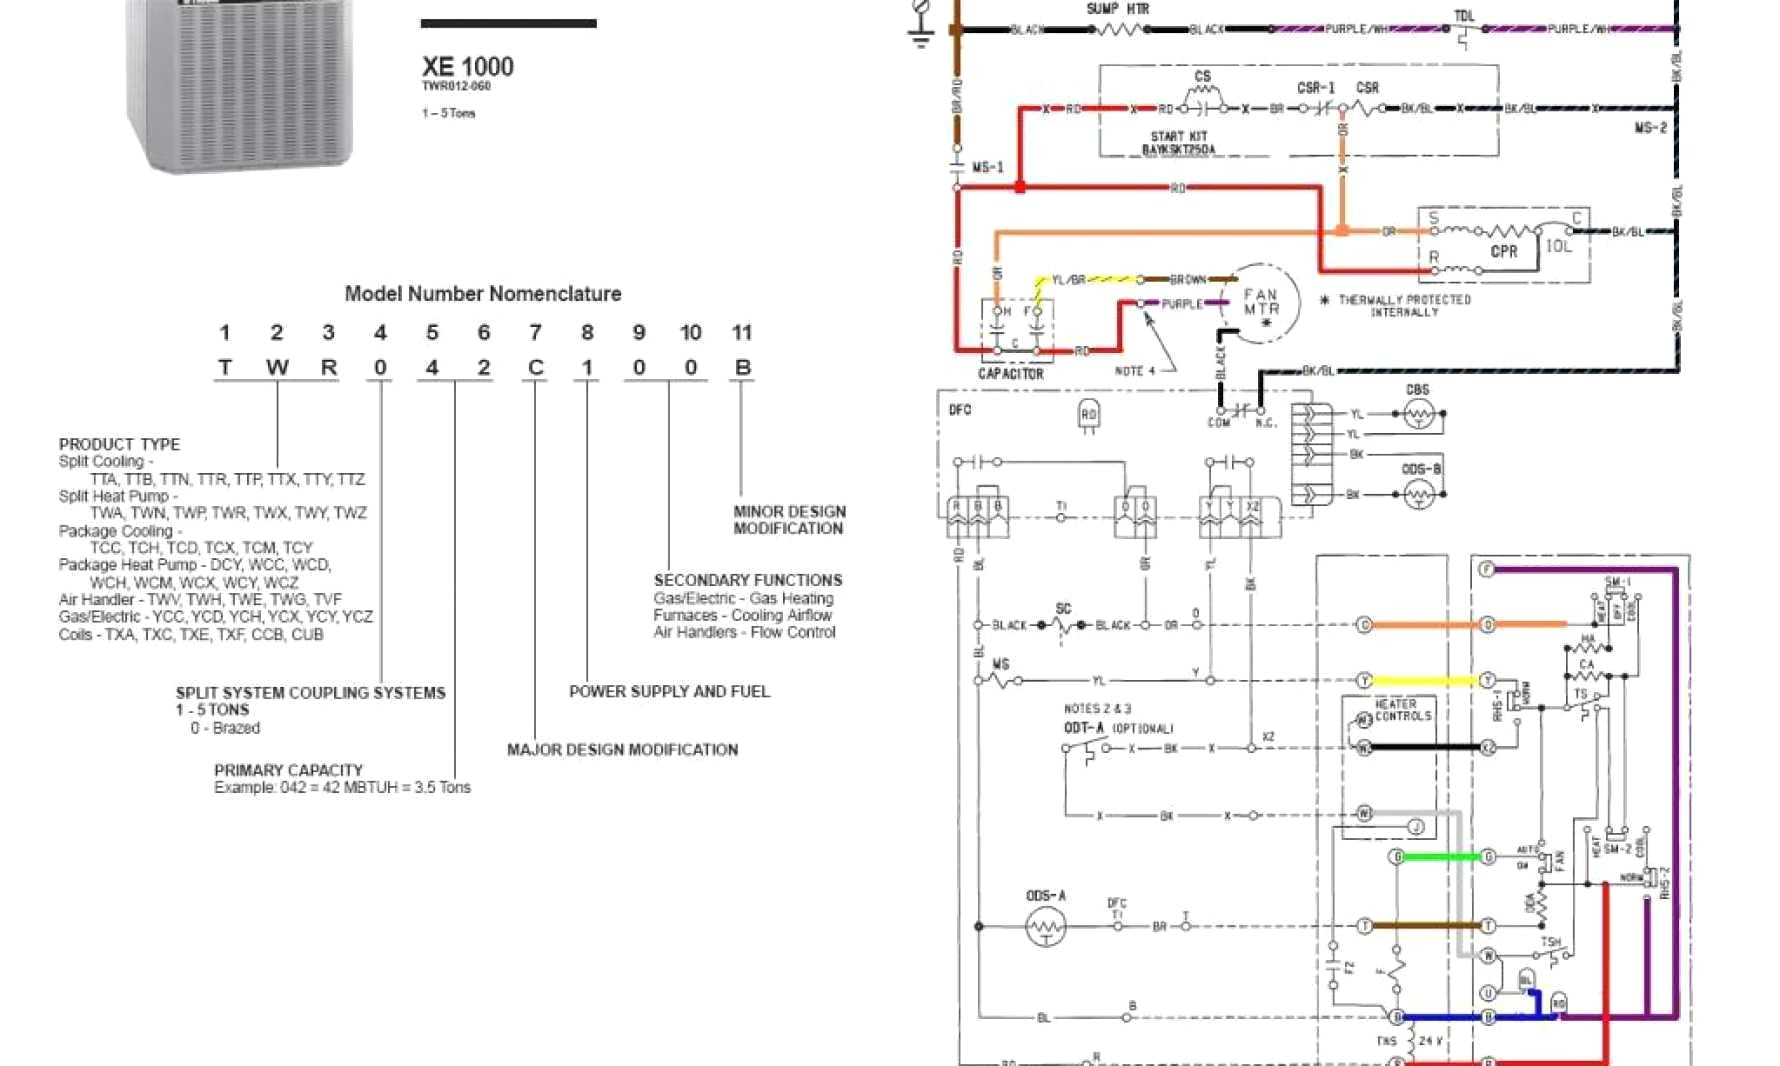 hight resolution of luxpro thermostat wiring diagram collection wiring diagram sample rh faceitsalon com luxpro 500 thermostat heat only